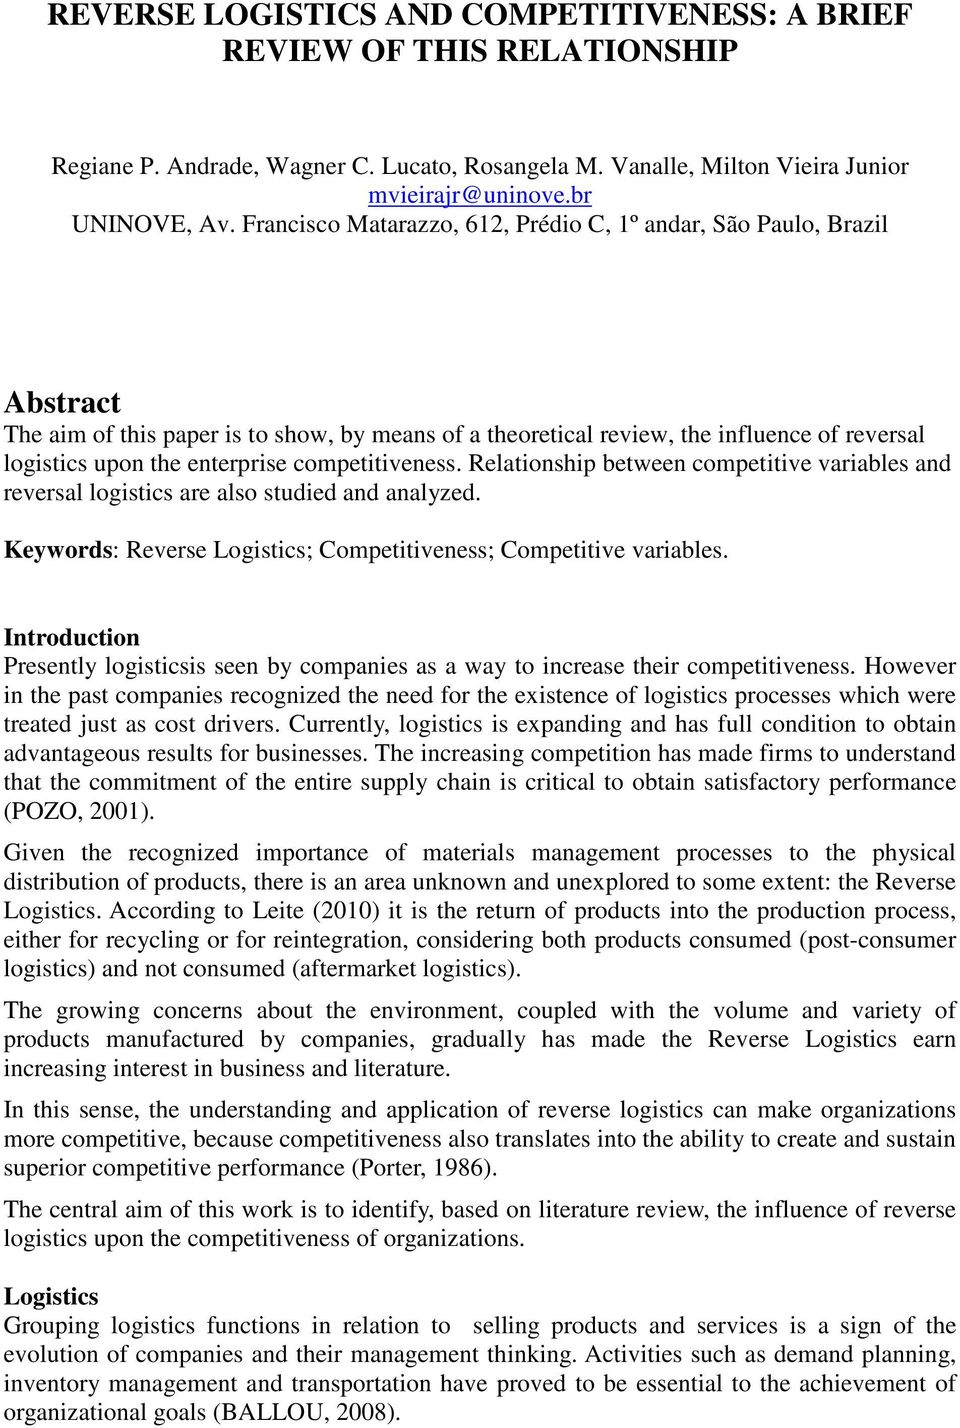 competitiveness. Relationship between competitive variables and reversal logistics are also studied and analyzed. Keywords: Reverse Logistics; Competitiveness; Competitive variables.